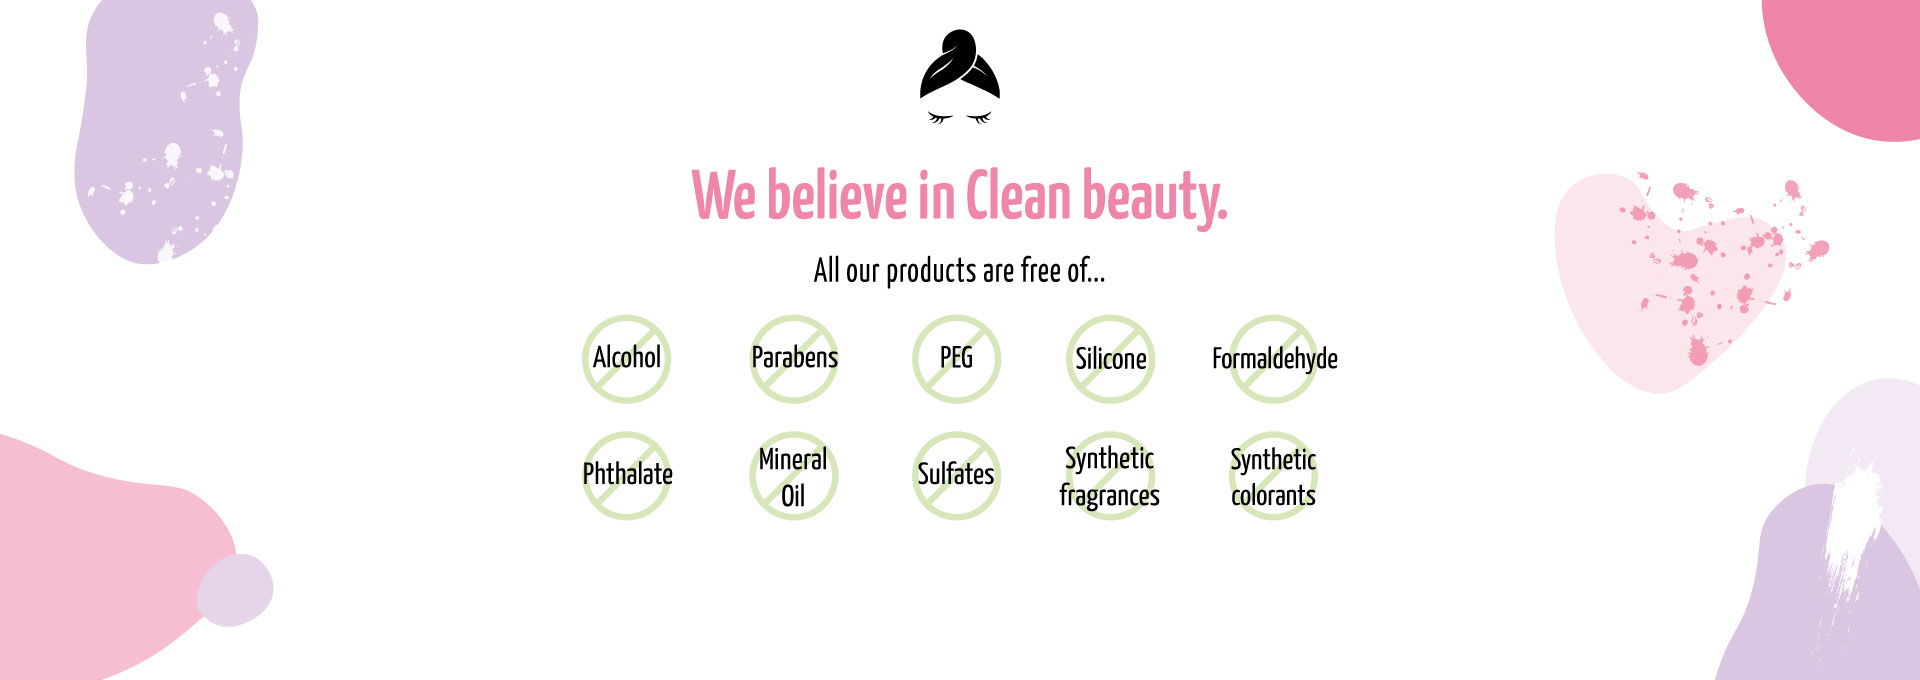 We are Clean beauty